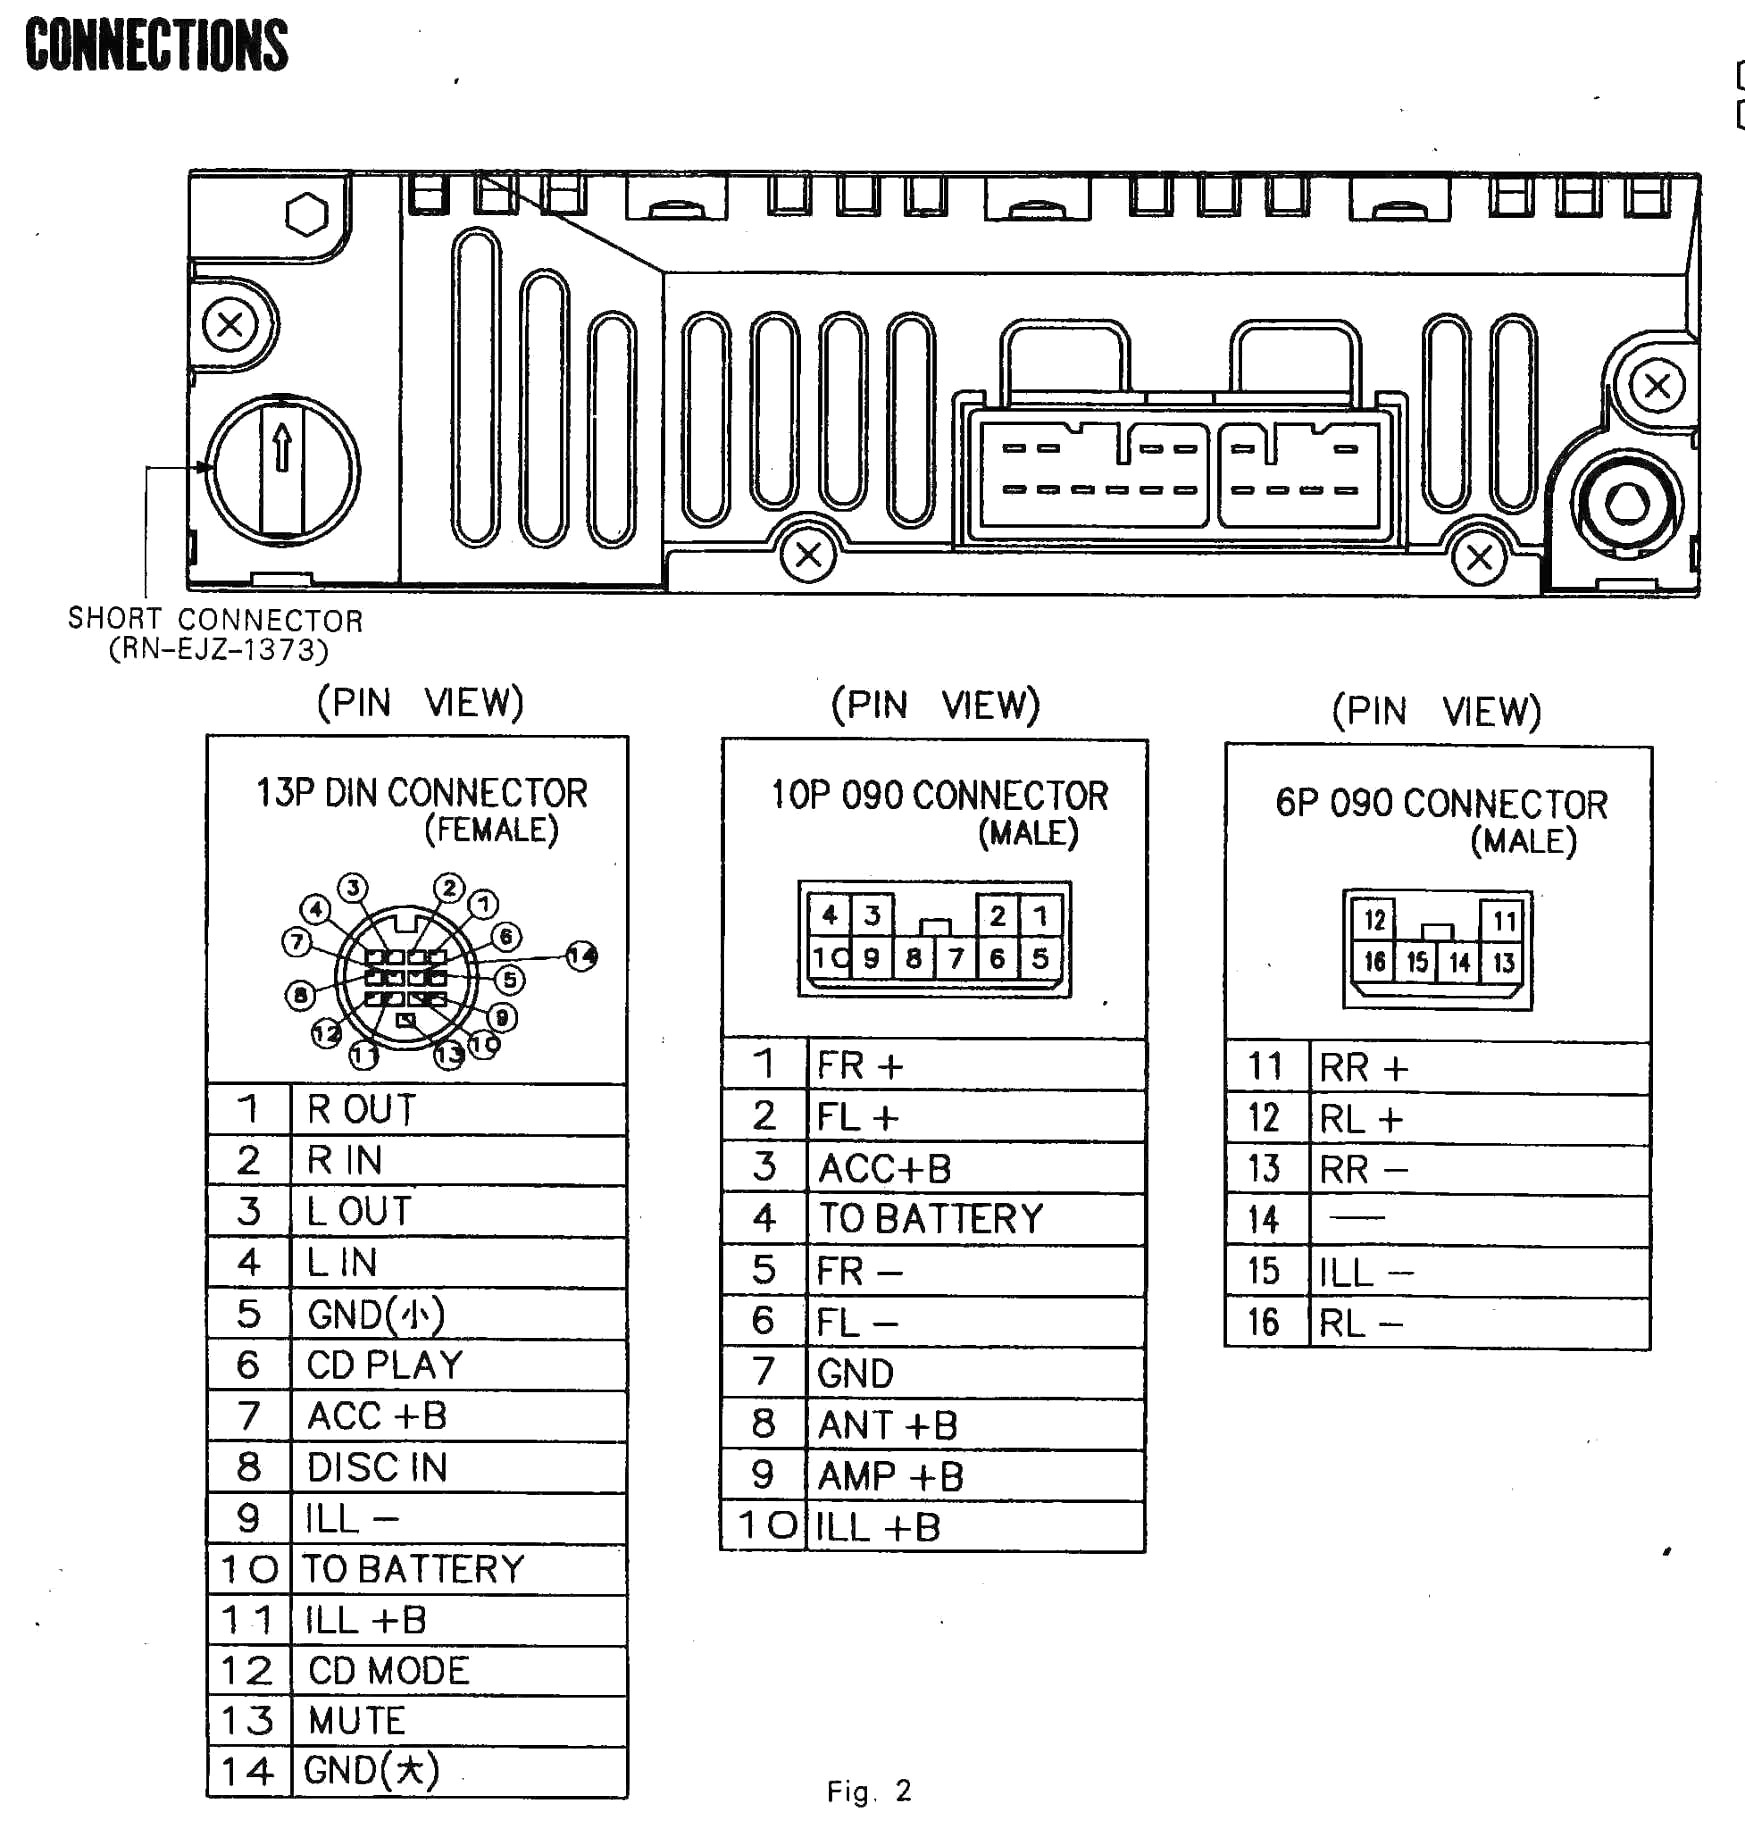 hight resolution of 98 jetta radio wiring diagram wiring diagram centre98 jetta radio wiring diagram wiring library2012 vw jetta